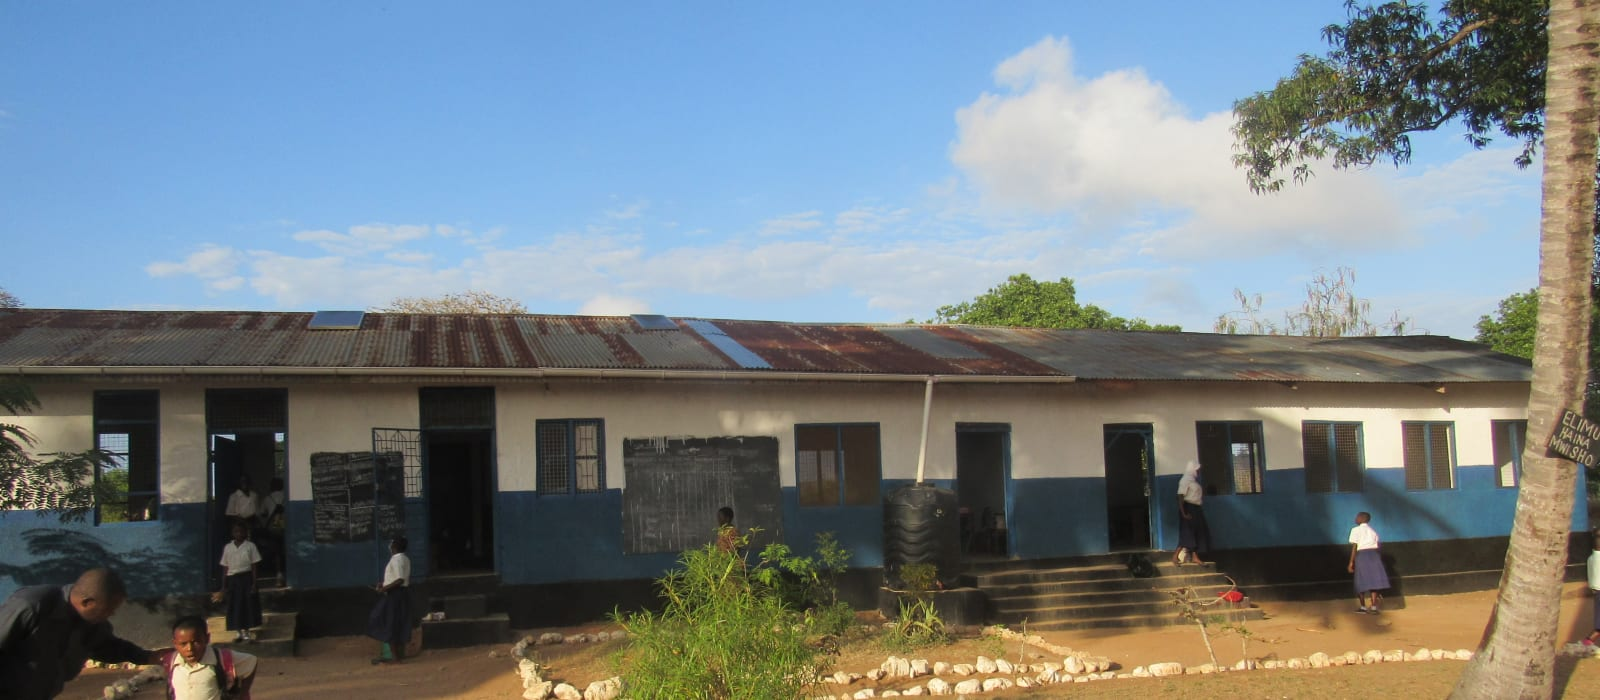 Singino Primary School